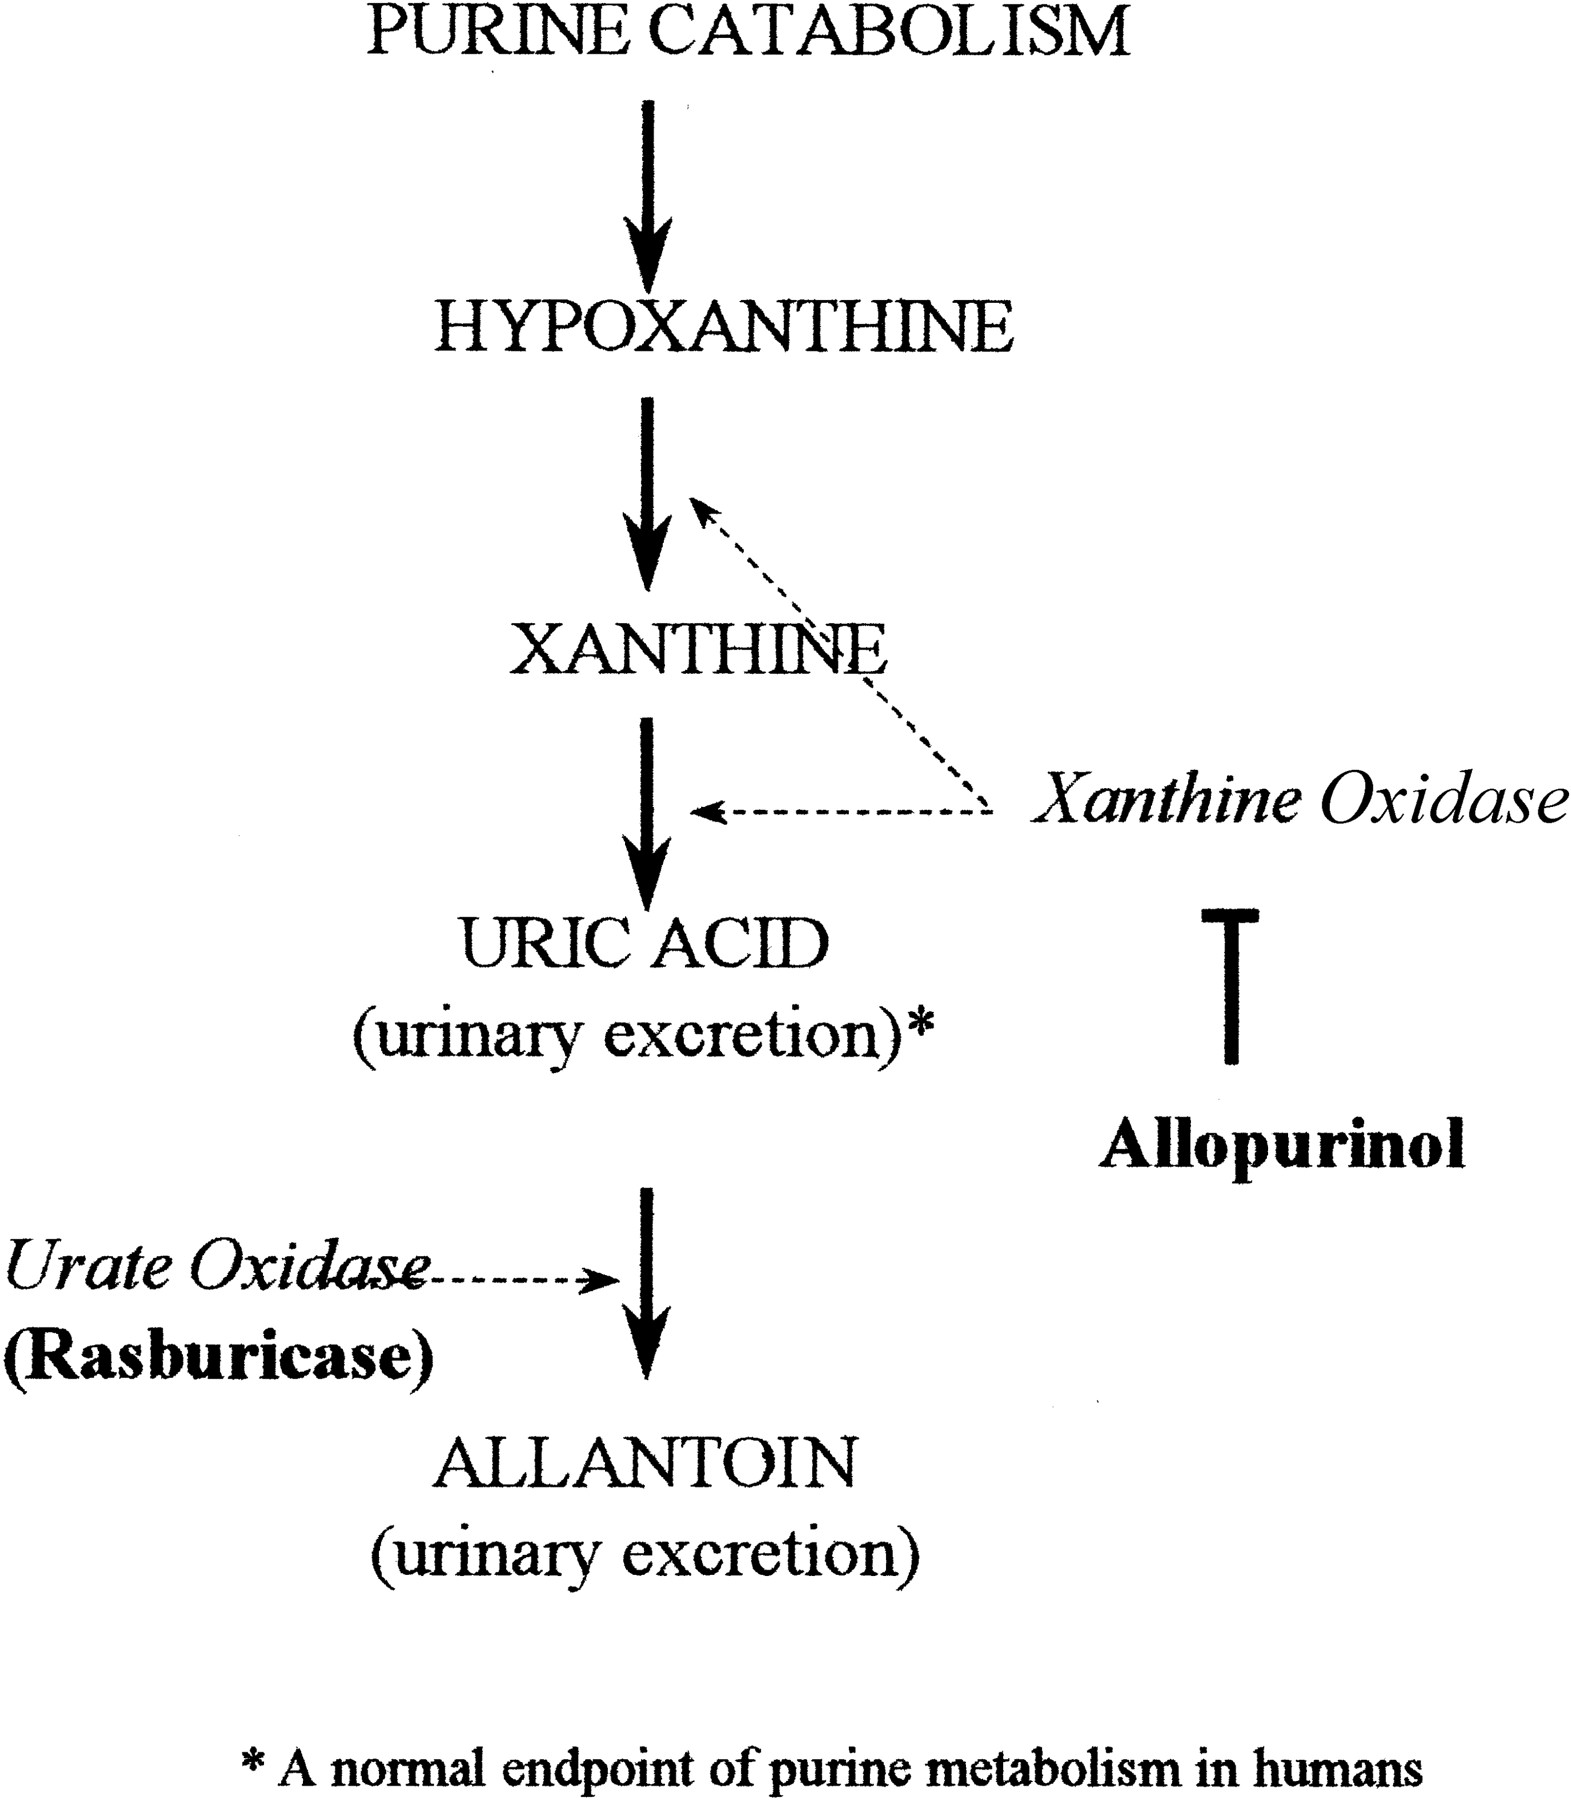 Relevant metabolic pathway for rasburicase mechanism of action (source)